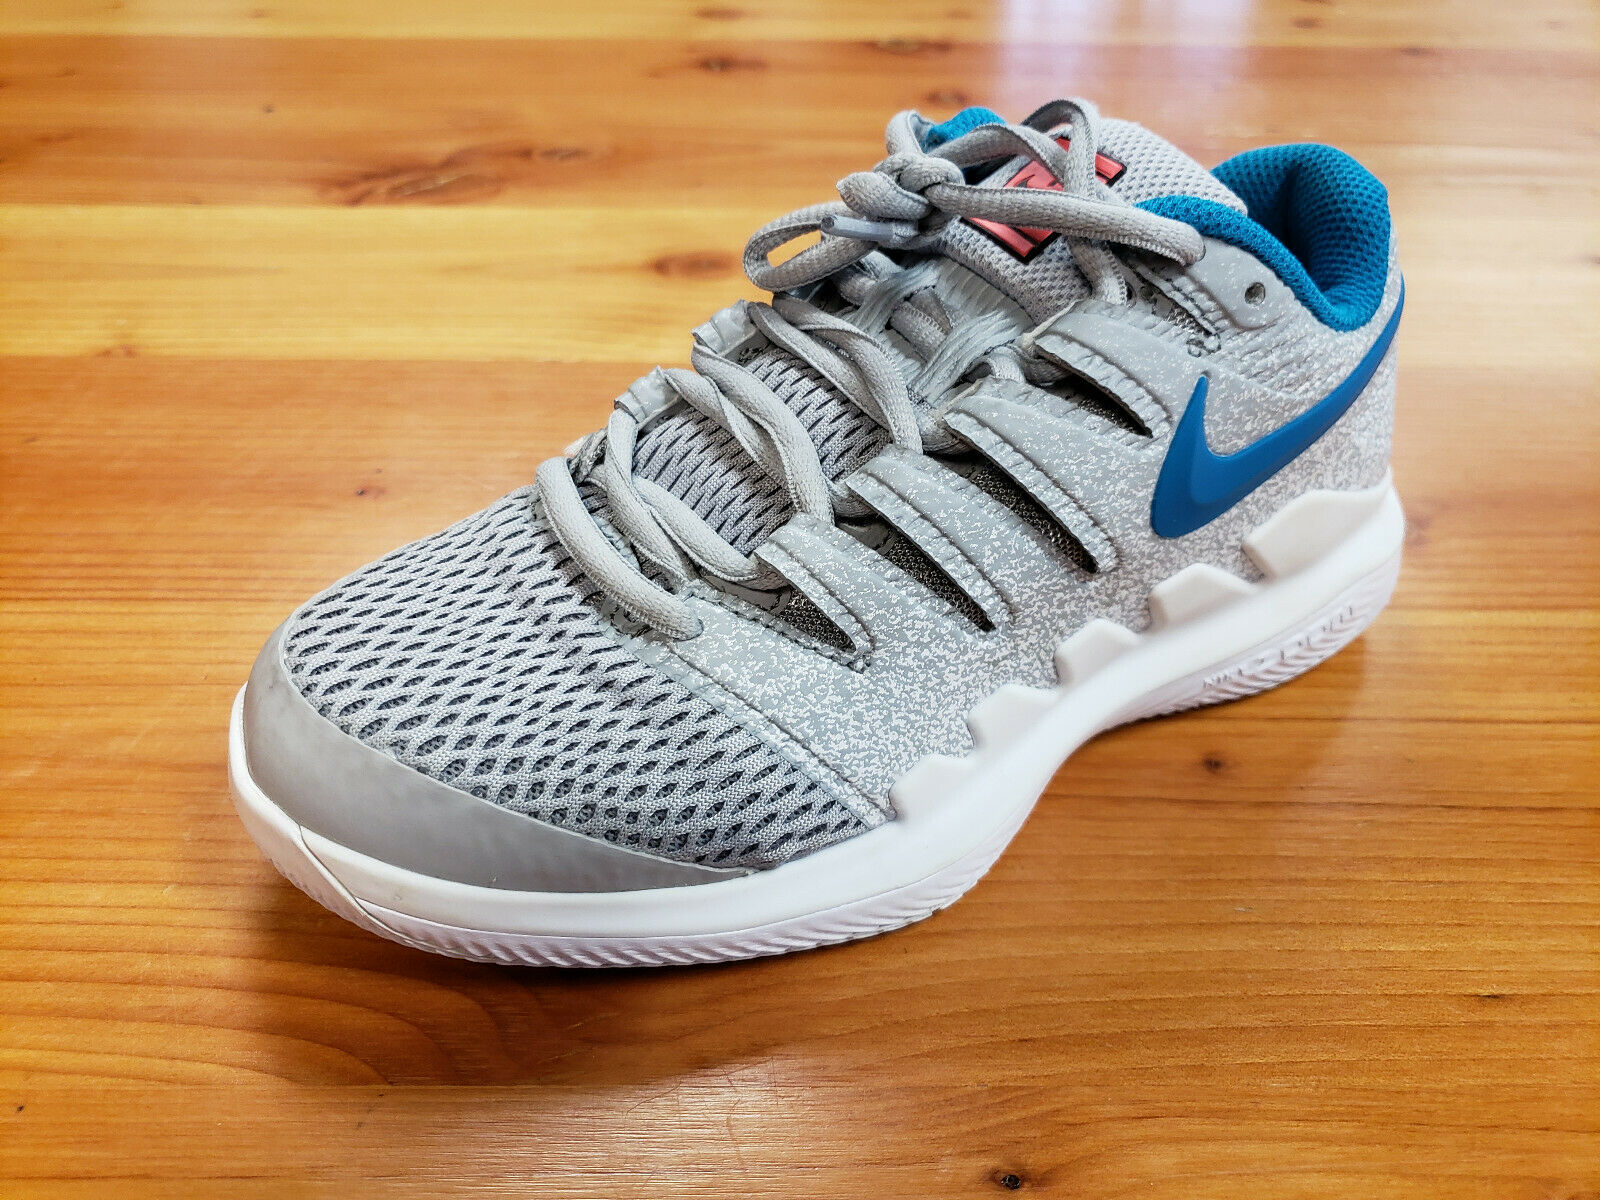 Women's Nike Air Zoom Vapor X Preowned Tennis shoes Size 5